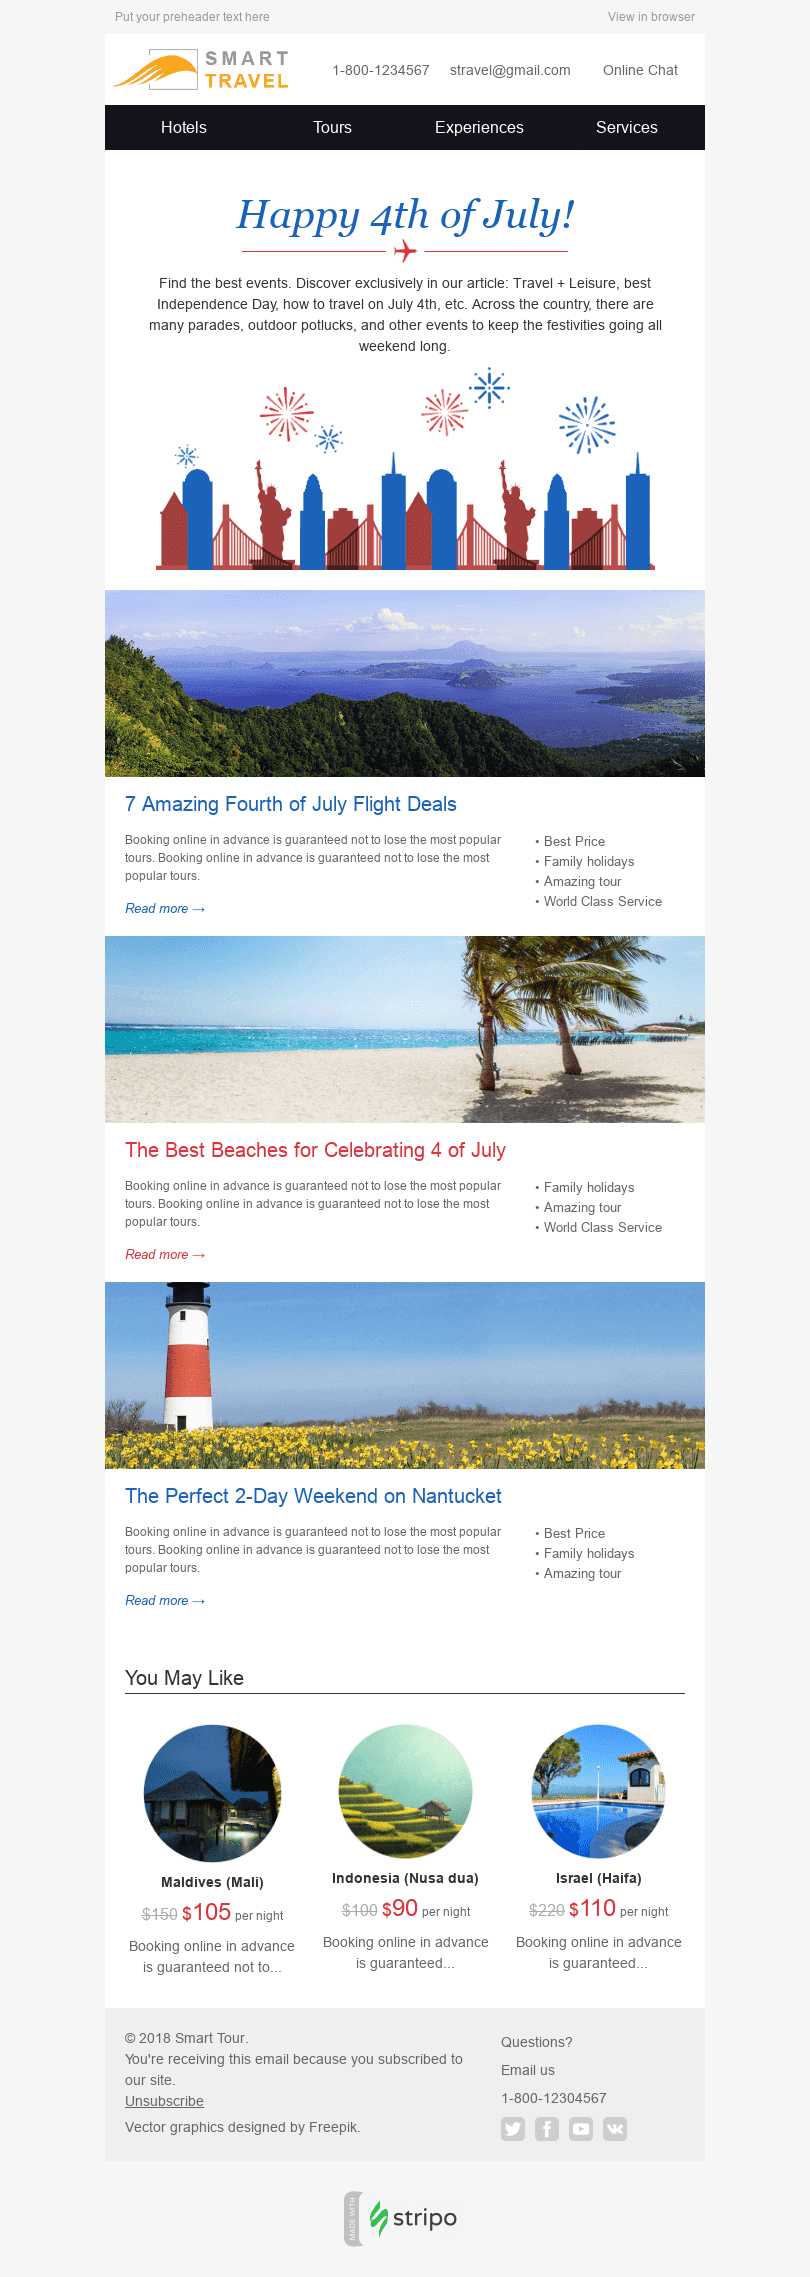 Stripo Tourism Holiday newsletter Happy Independence Day Explore America email web